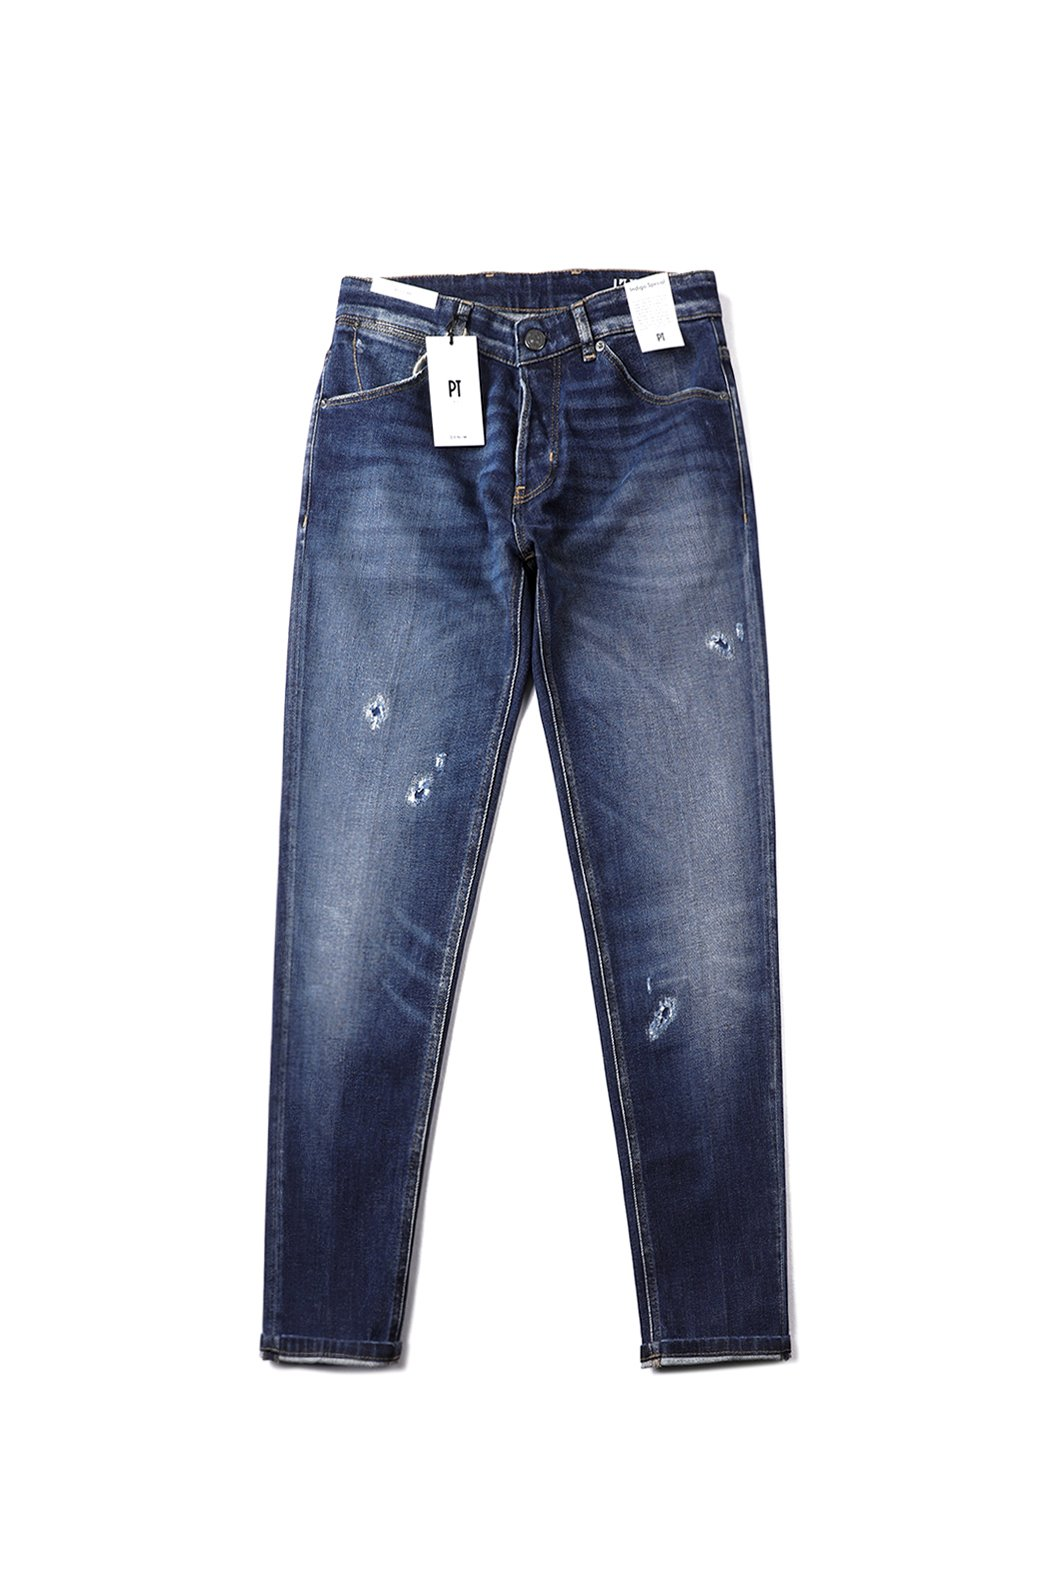 PT-TORINO Reggae Indigo Special Sustainable Roll UP Blue Jeans